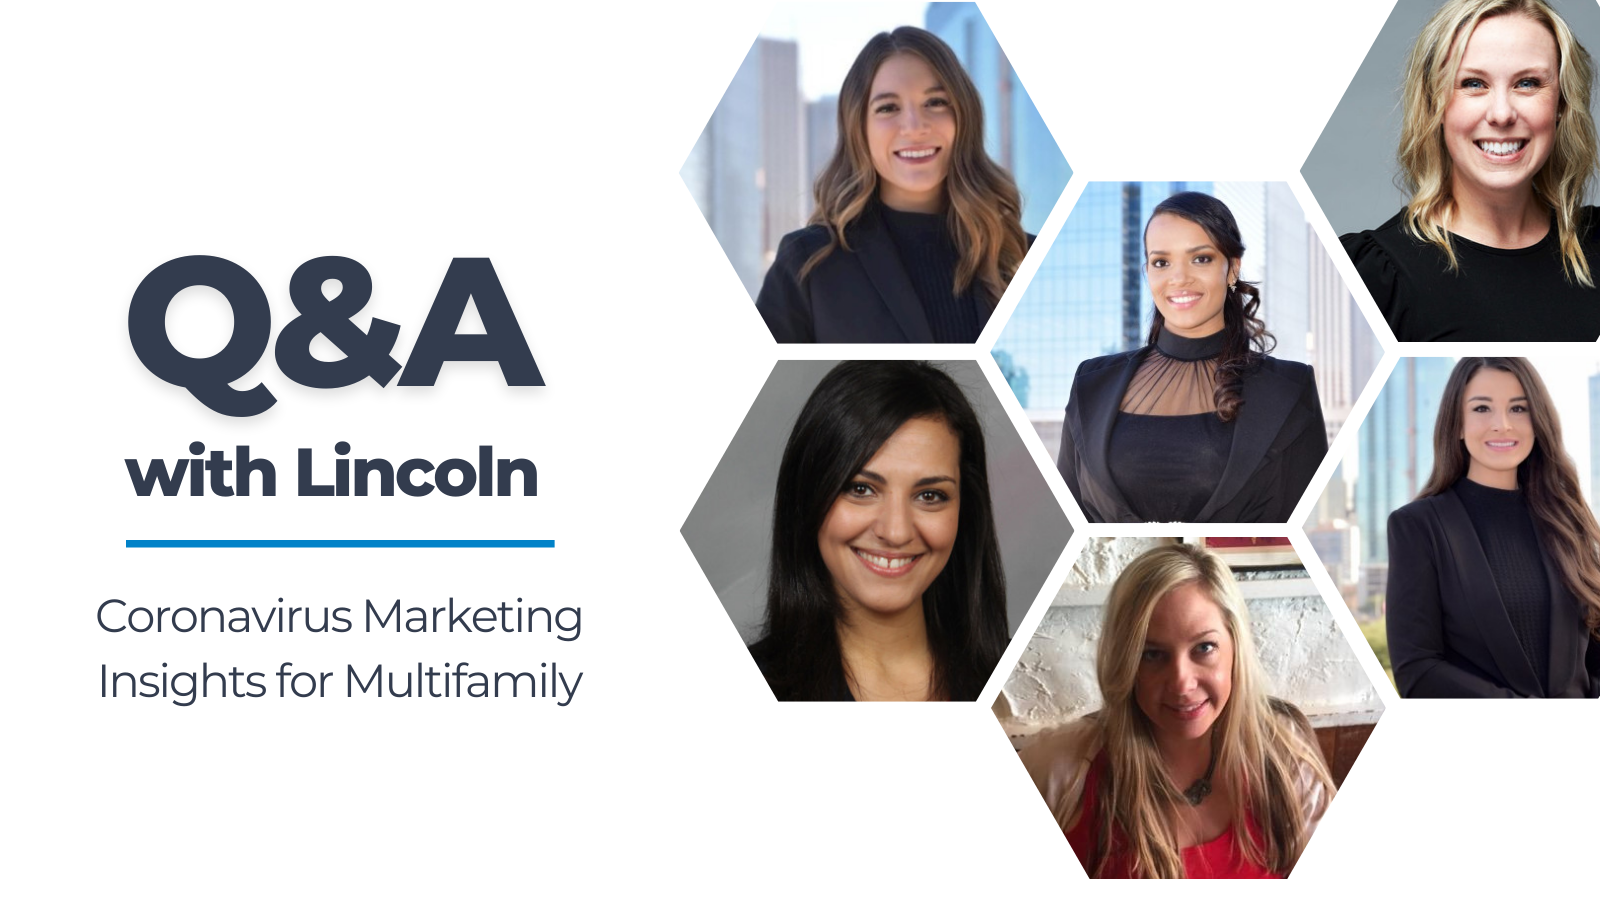 Q&A with Lincoln: COVID Marketing Insights for Multifamily